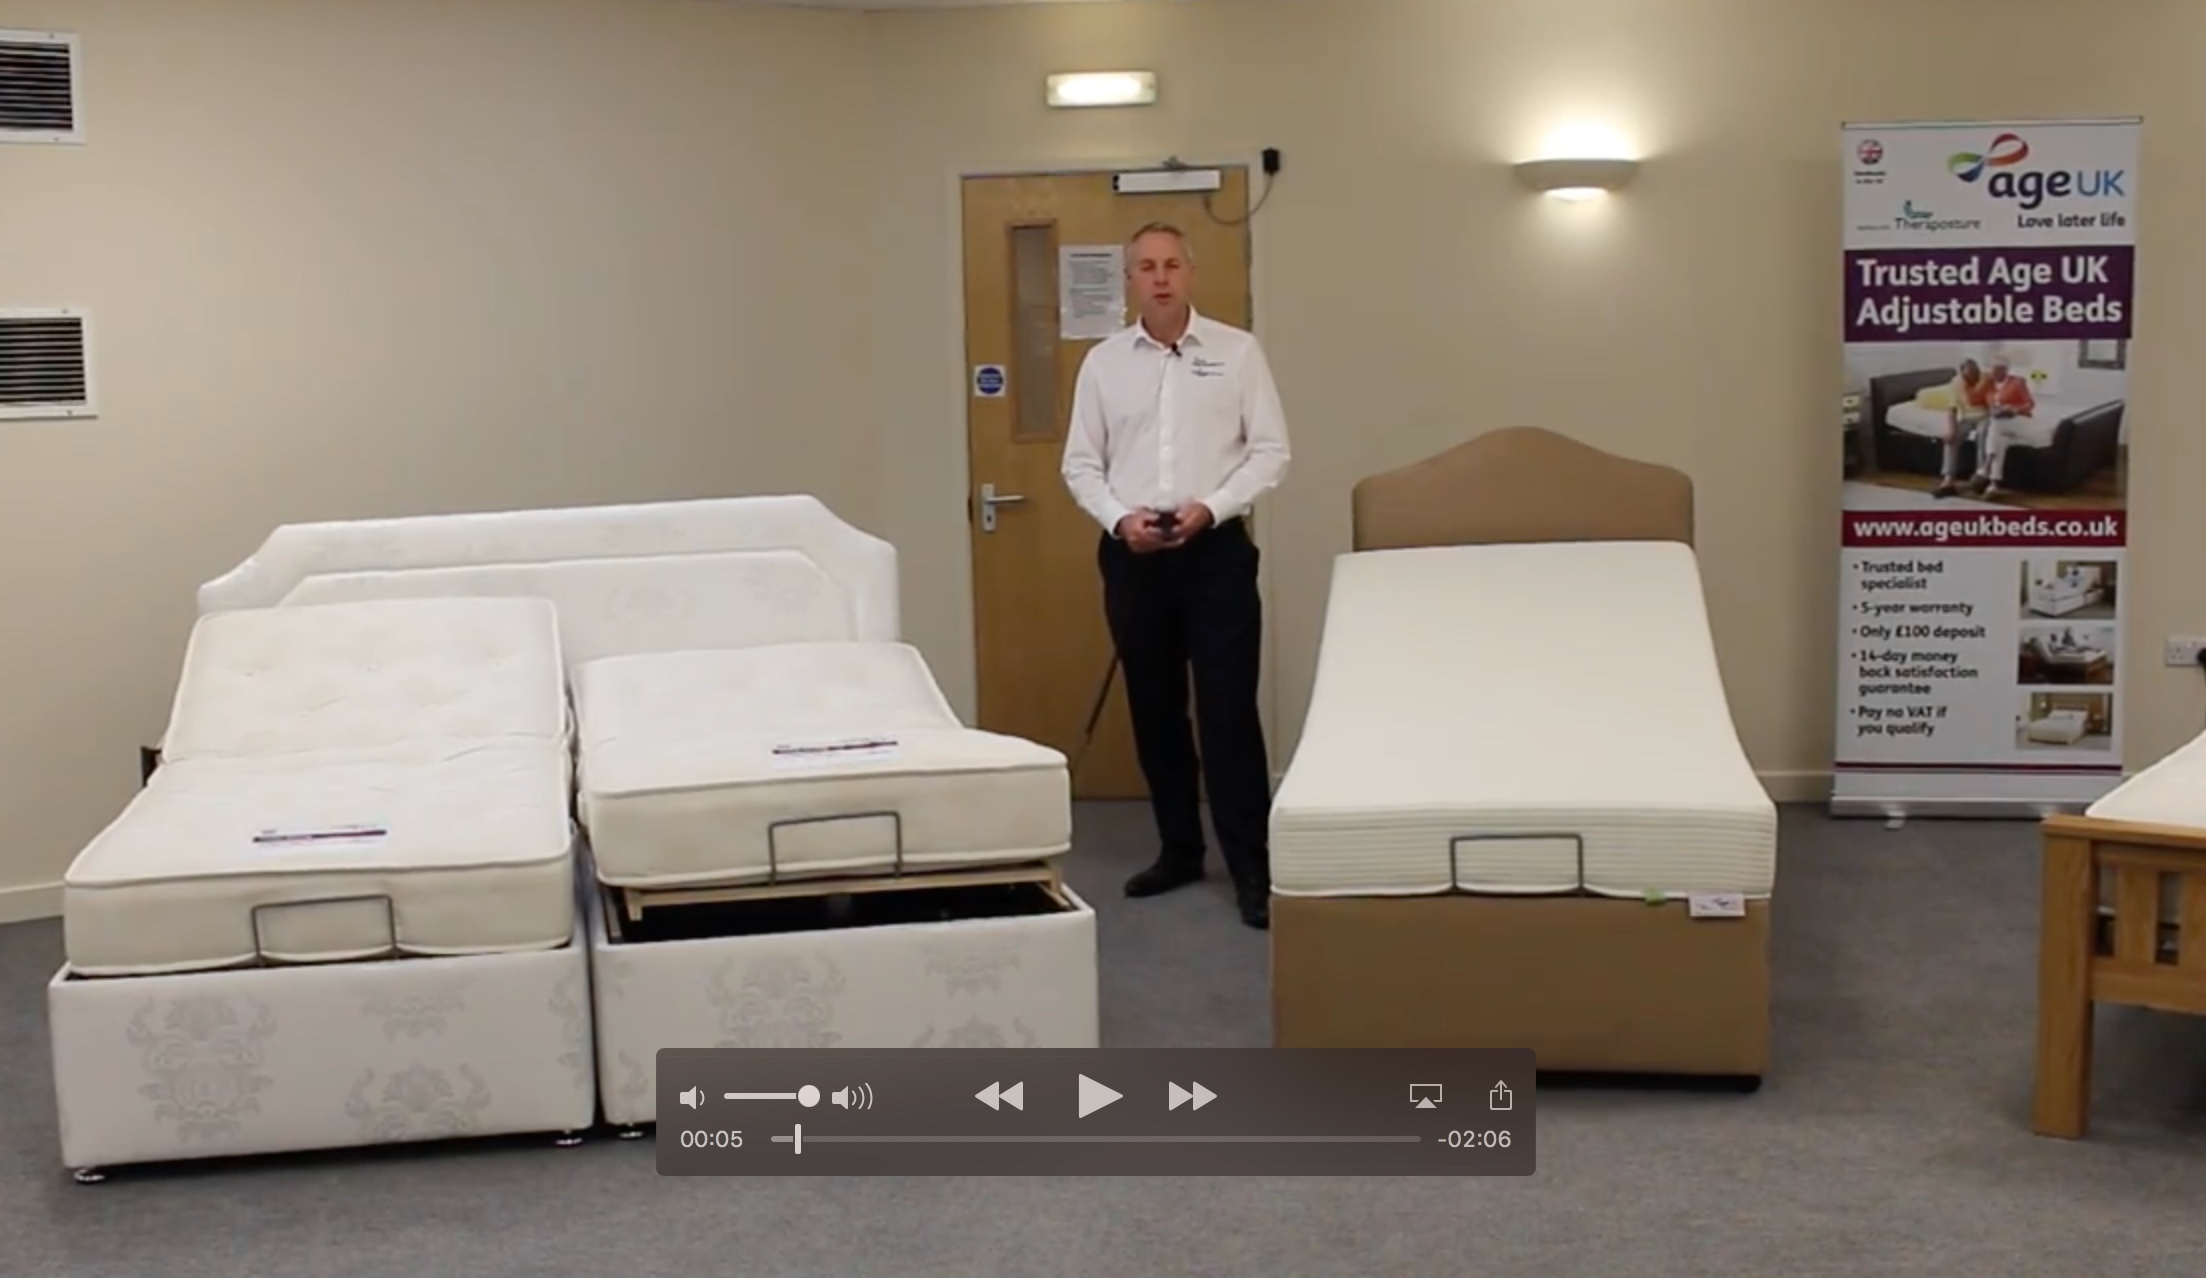 Age UK Adjustable Beds from Theraposture - introducing the range